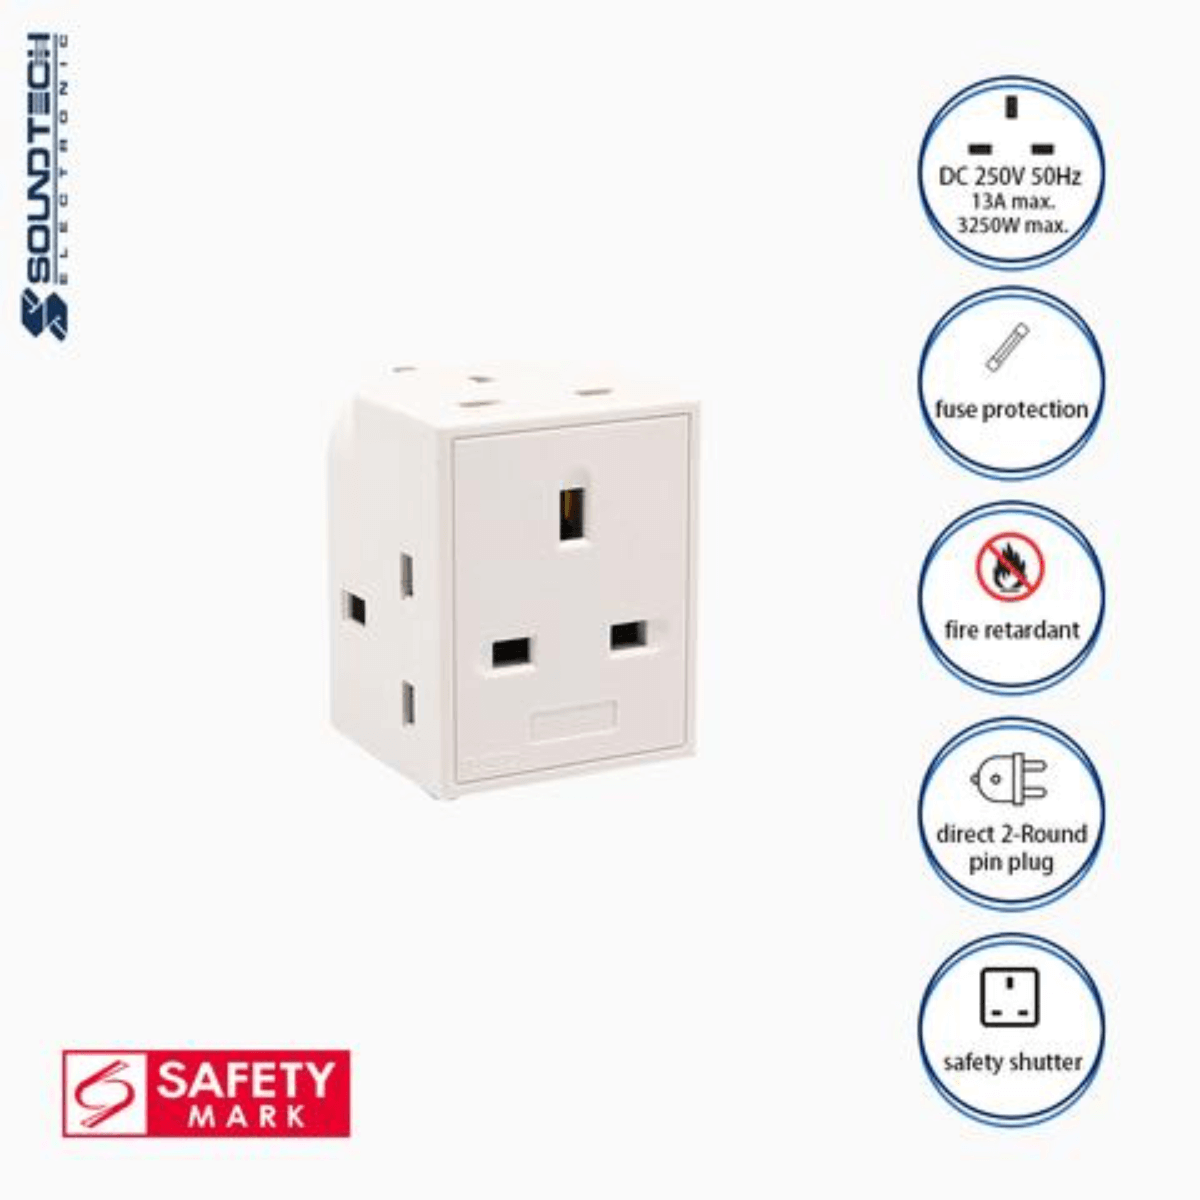 Soundteoh 3 Multiway Adaptor PP-35